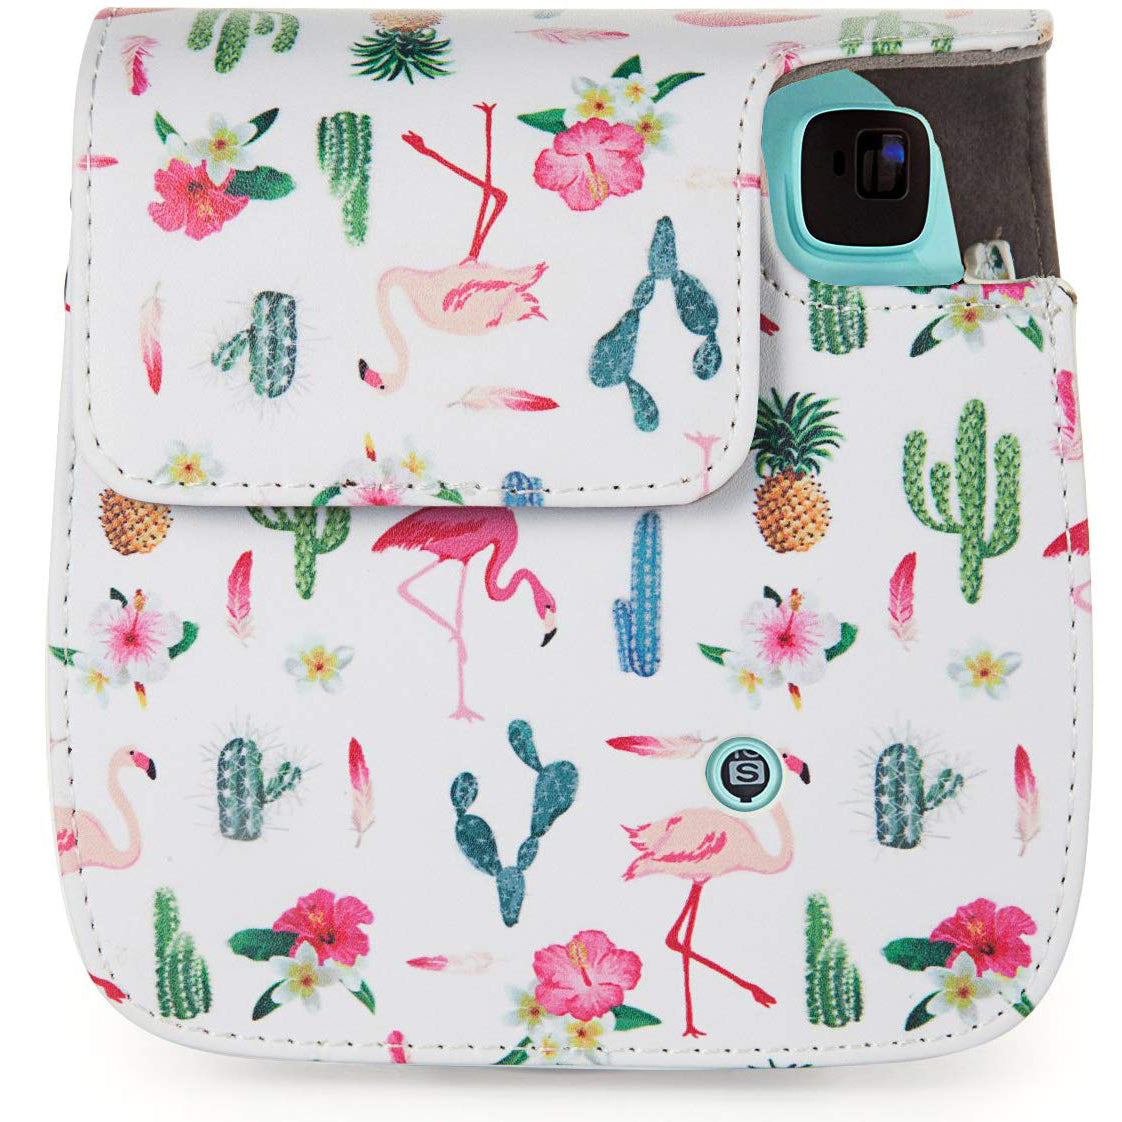 Caiul Pu Leather Fujifilm Instax Mini 9 (The cactus flamingos) Camera Bag